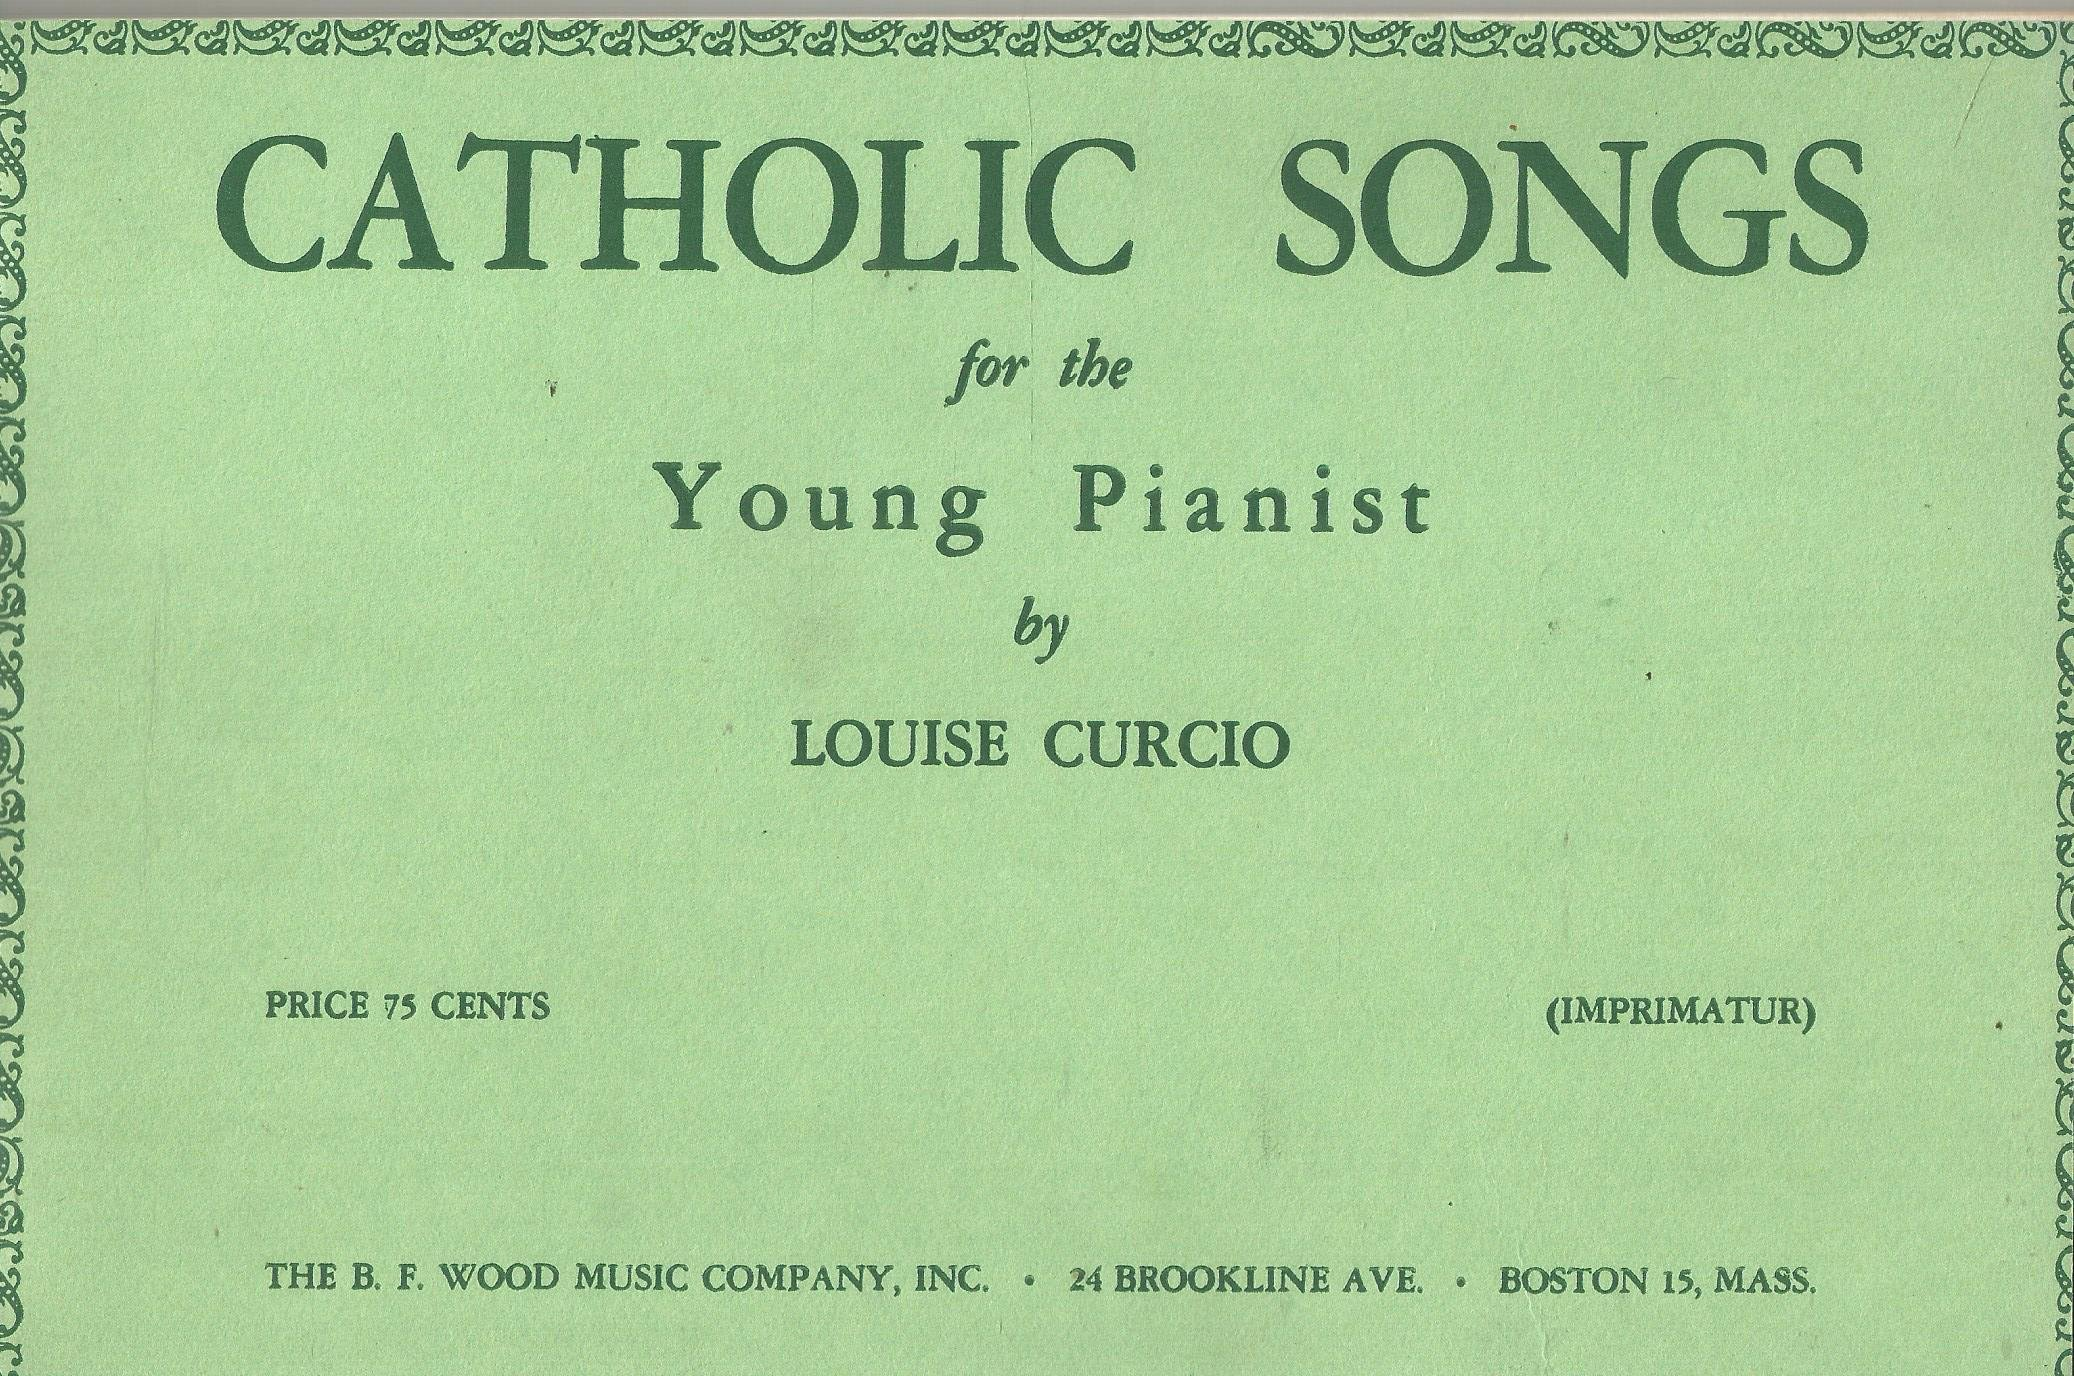 Catholic Songs for the Young Pianist by Louise Curcio: Louise Curcio